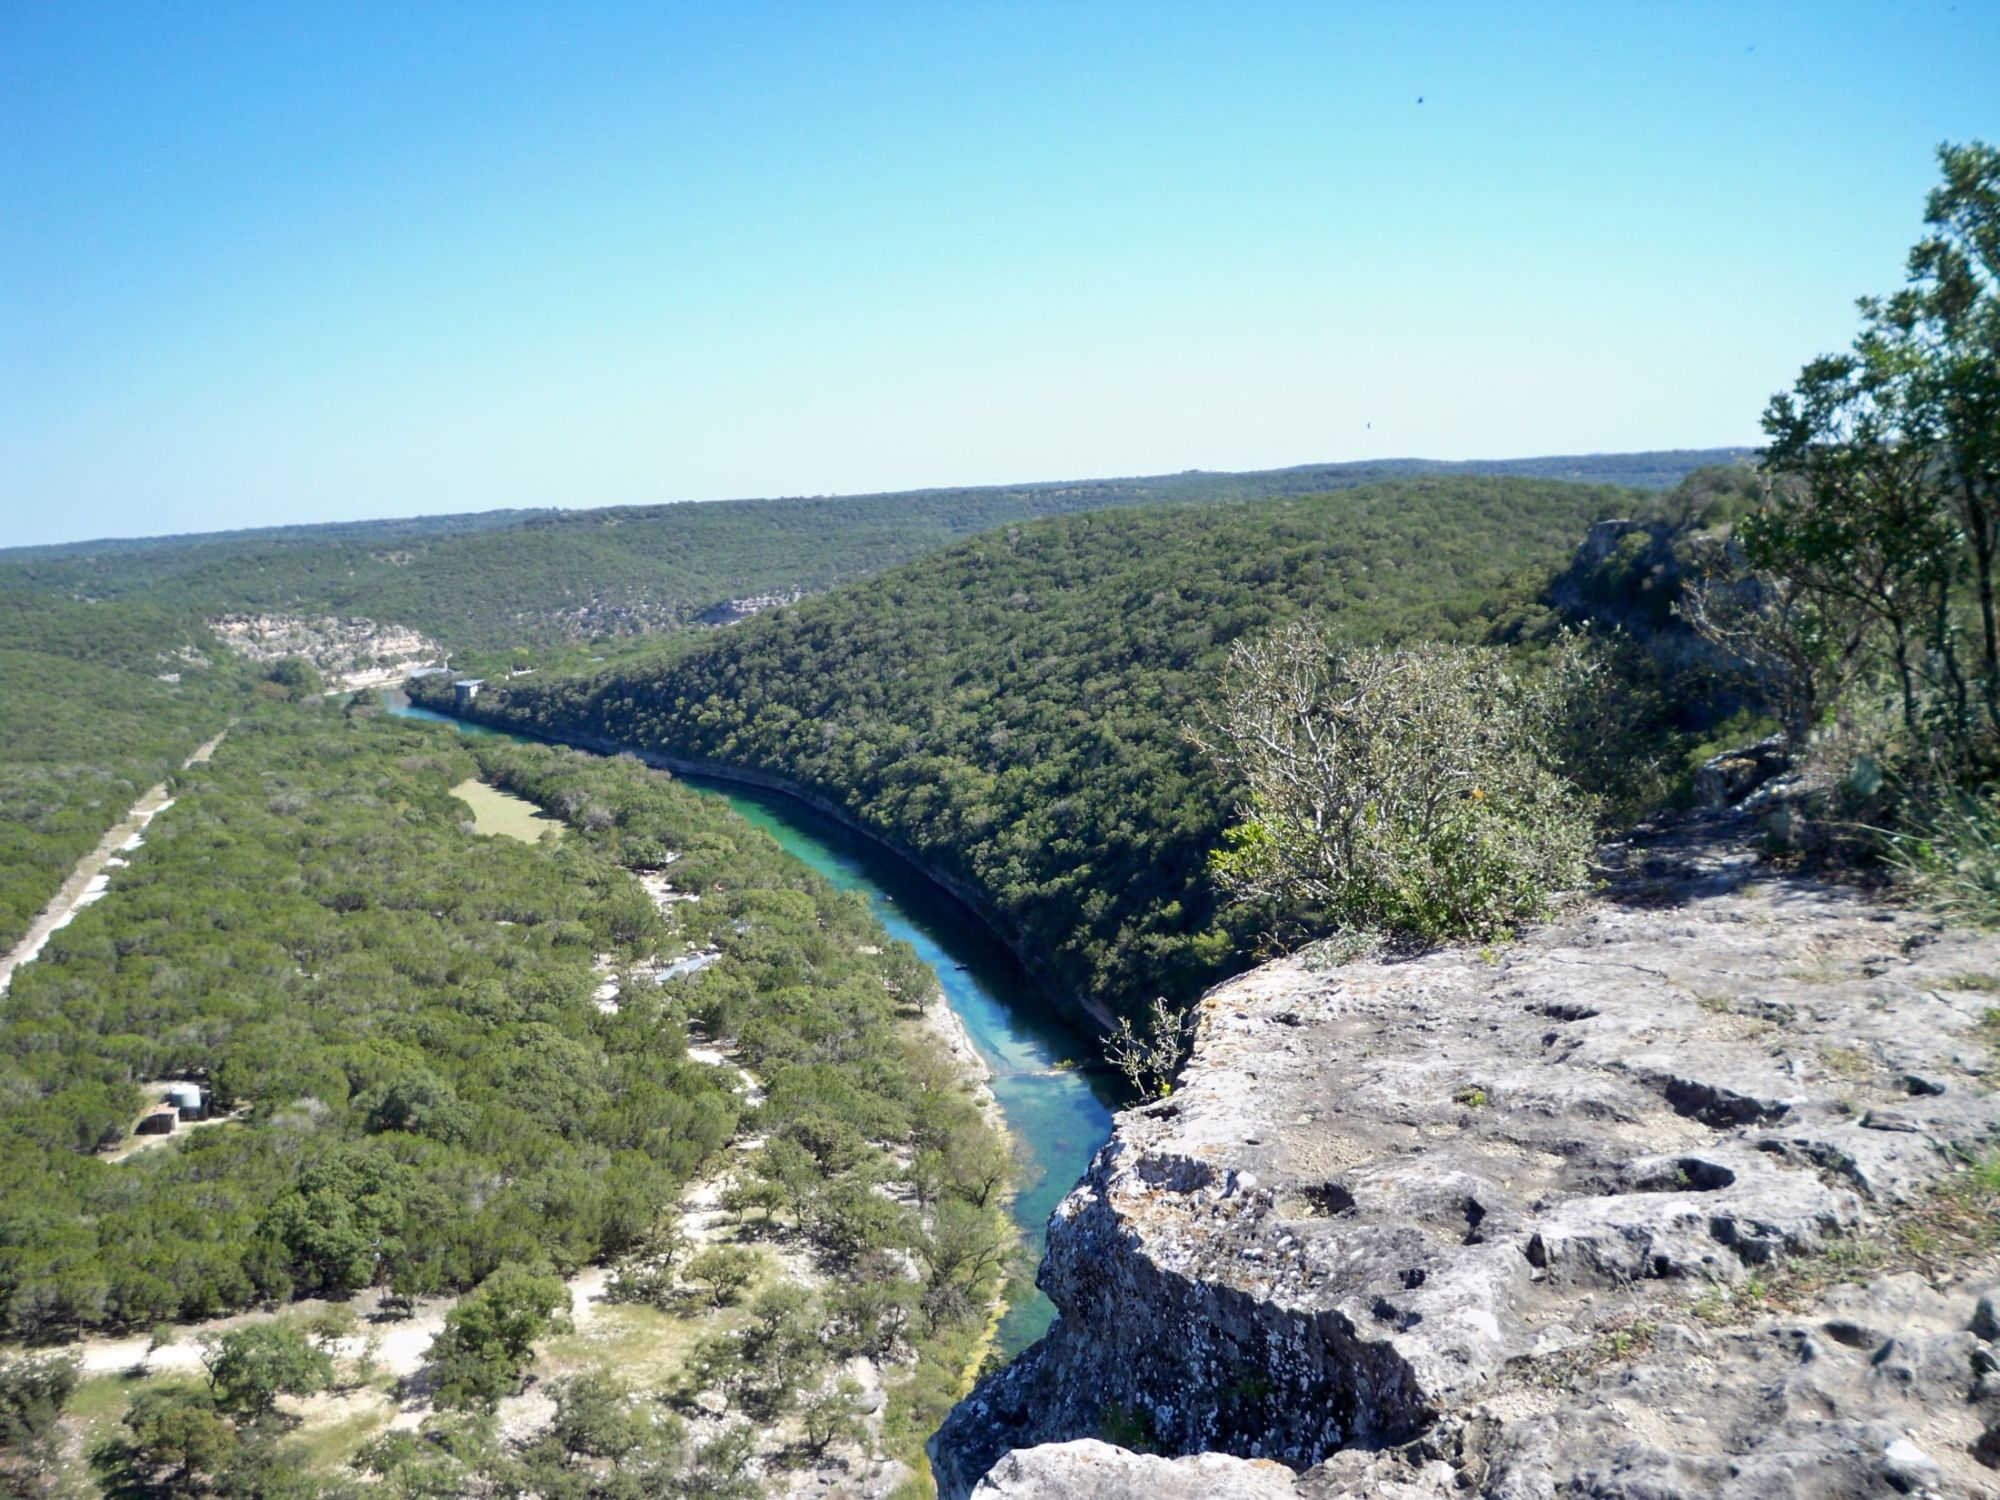 hill-country-texas-rivers.jpg hill country